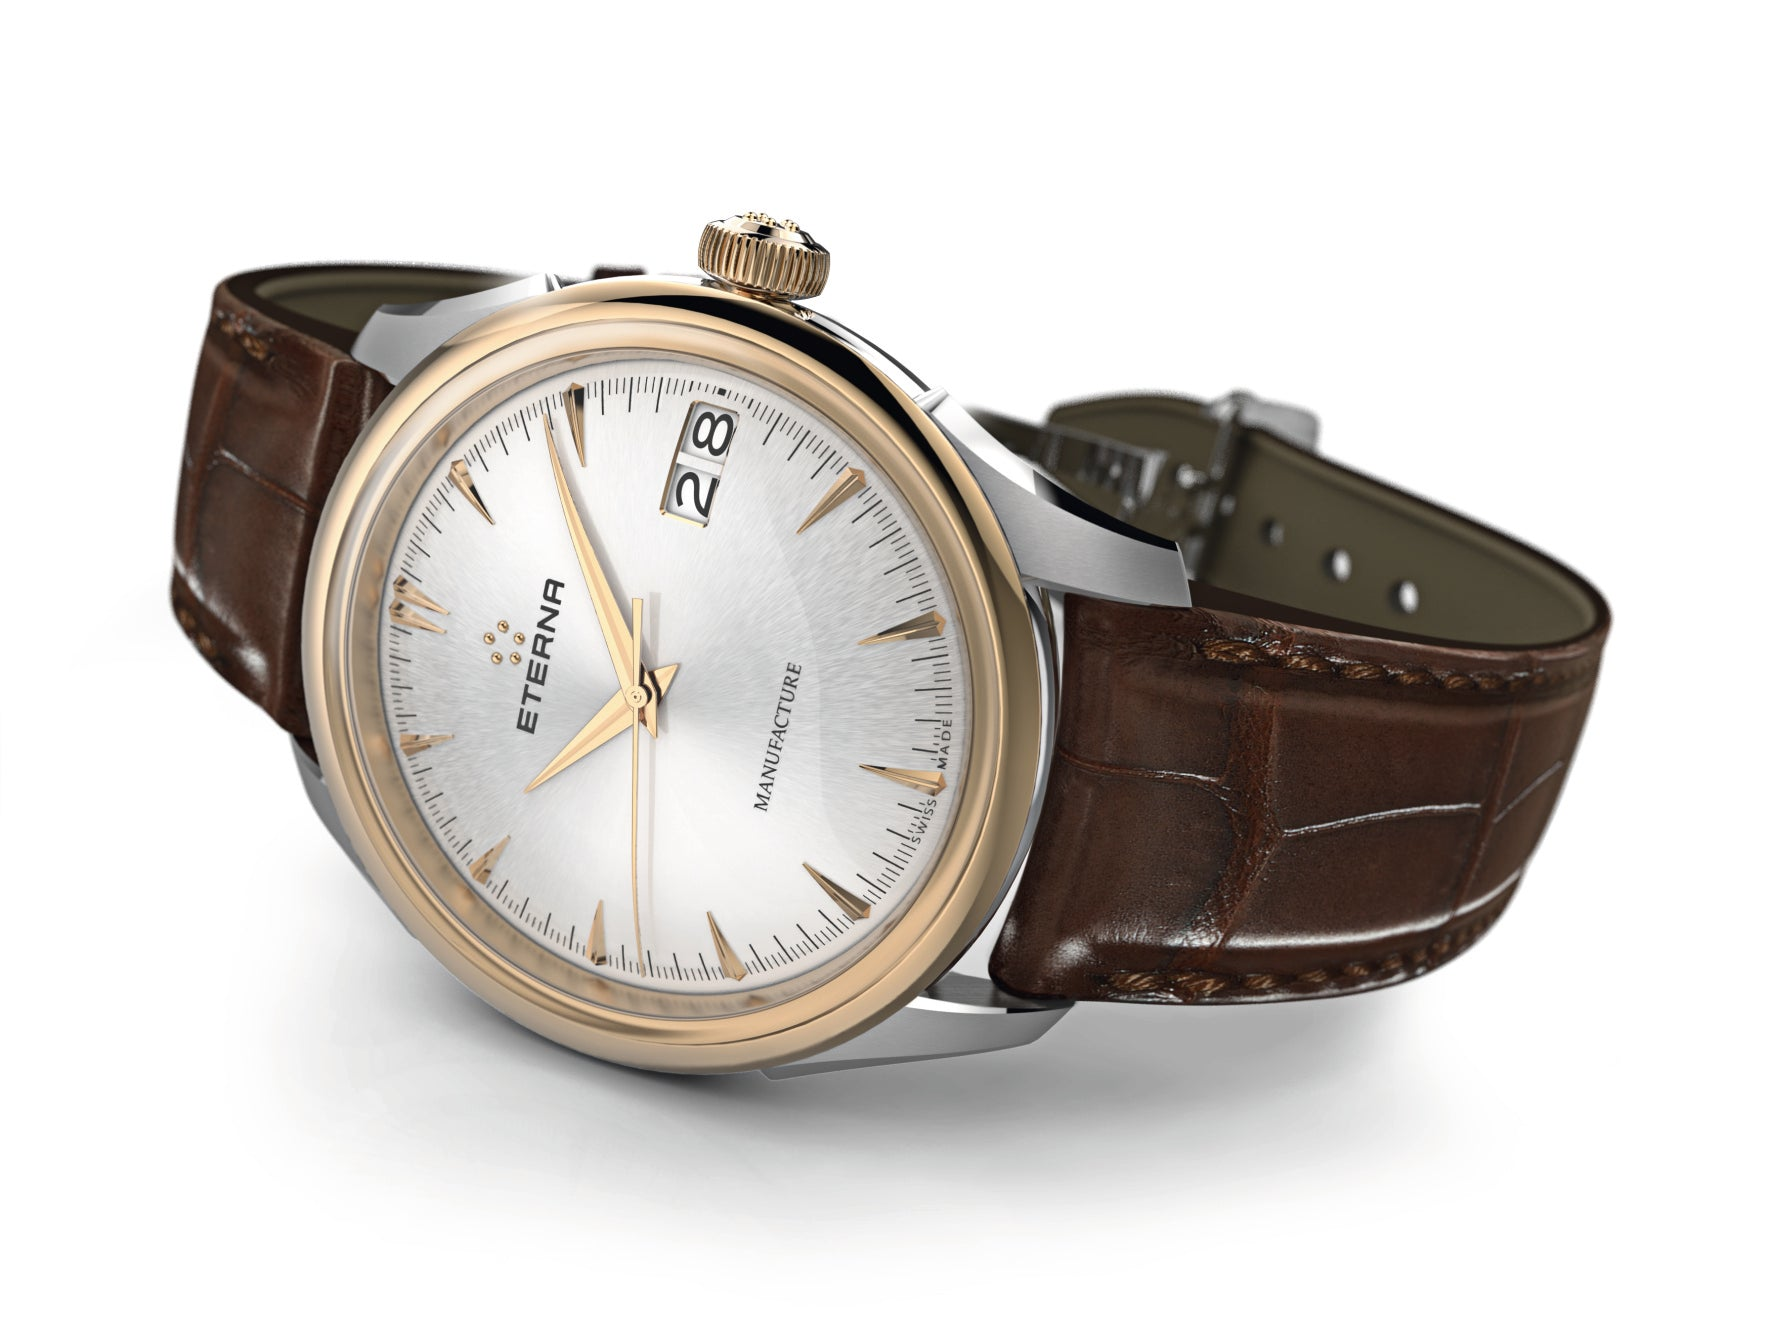 New Eterna 1948 Legacy Big Date Watch